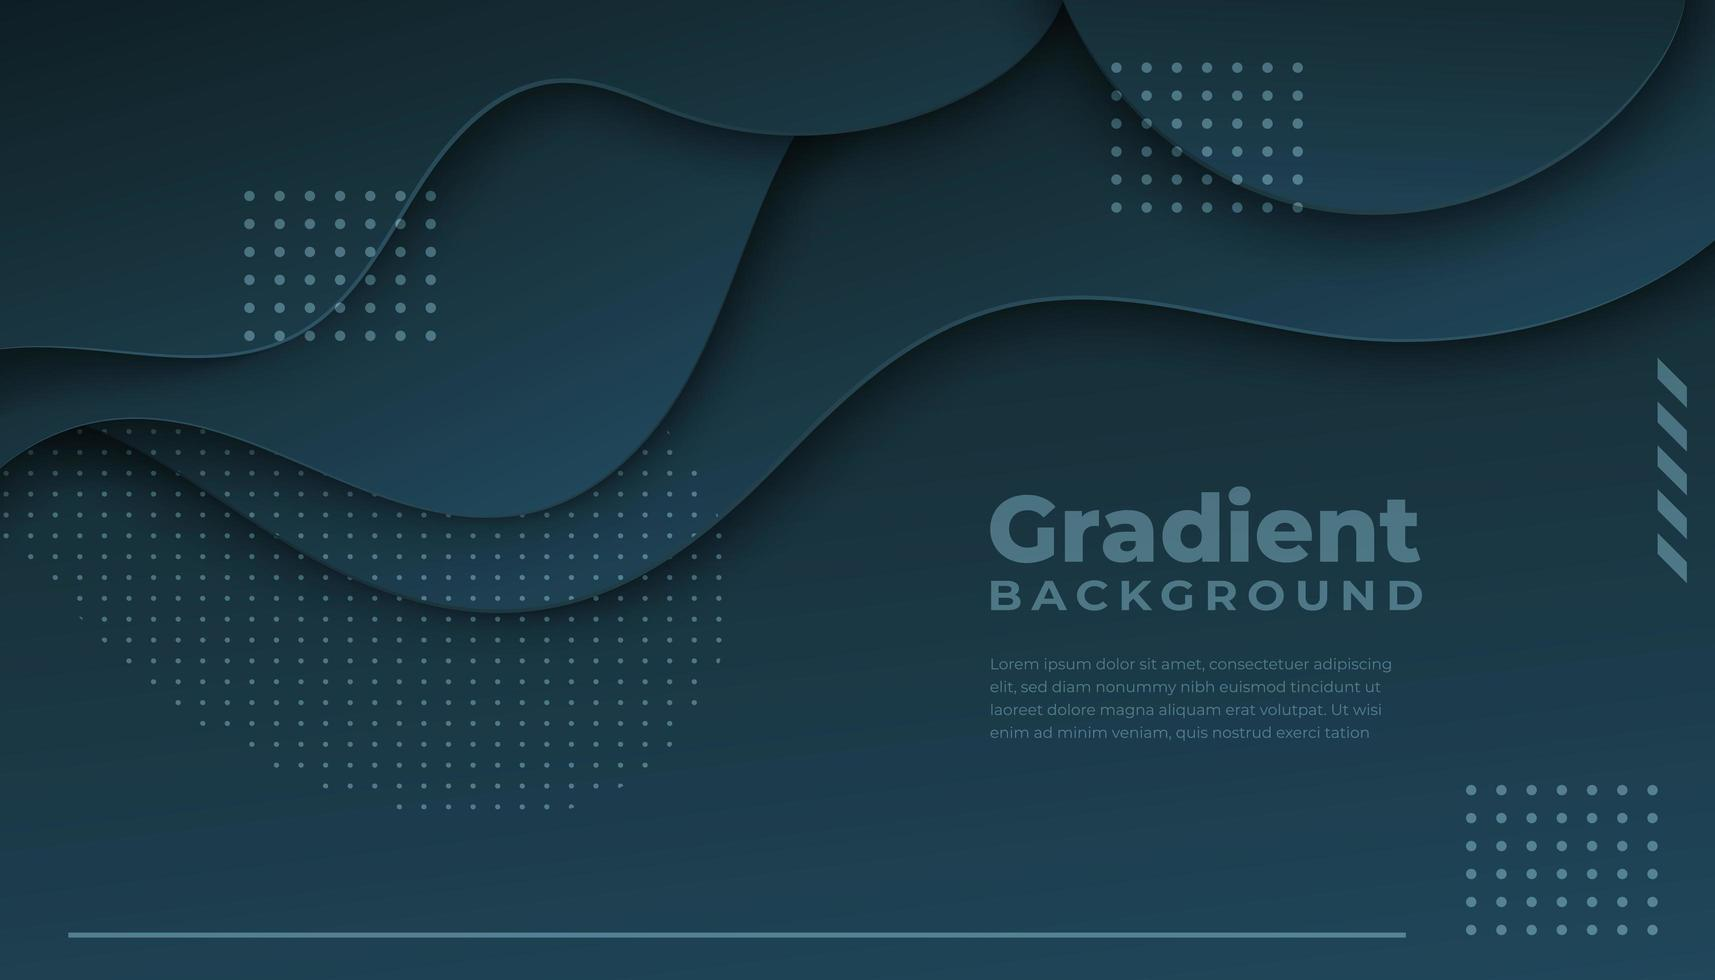 Dark Blue Background Overlapping Layers on Top